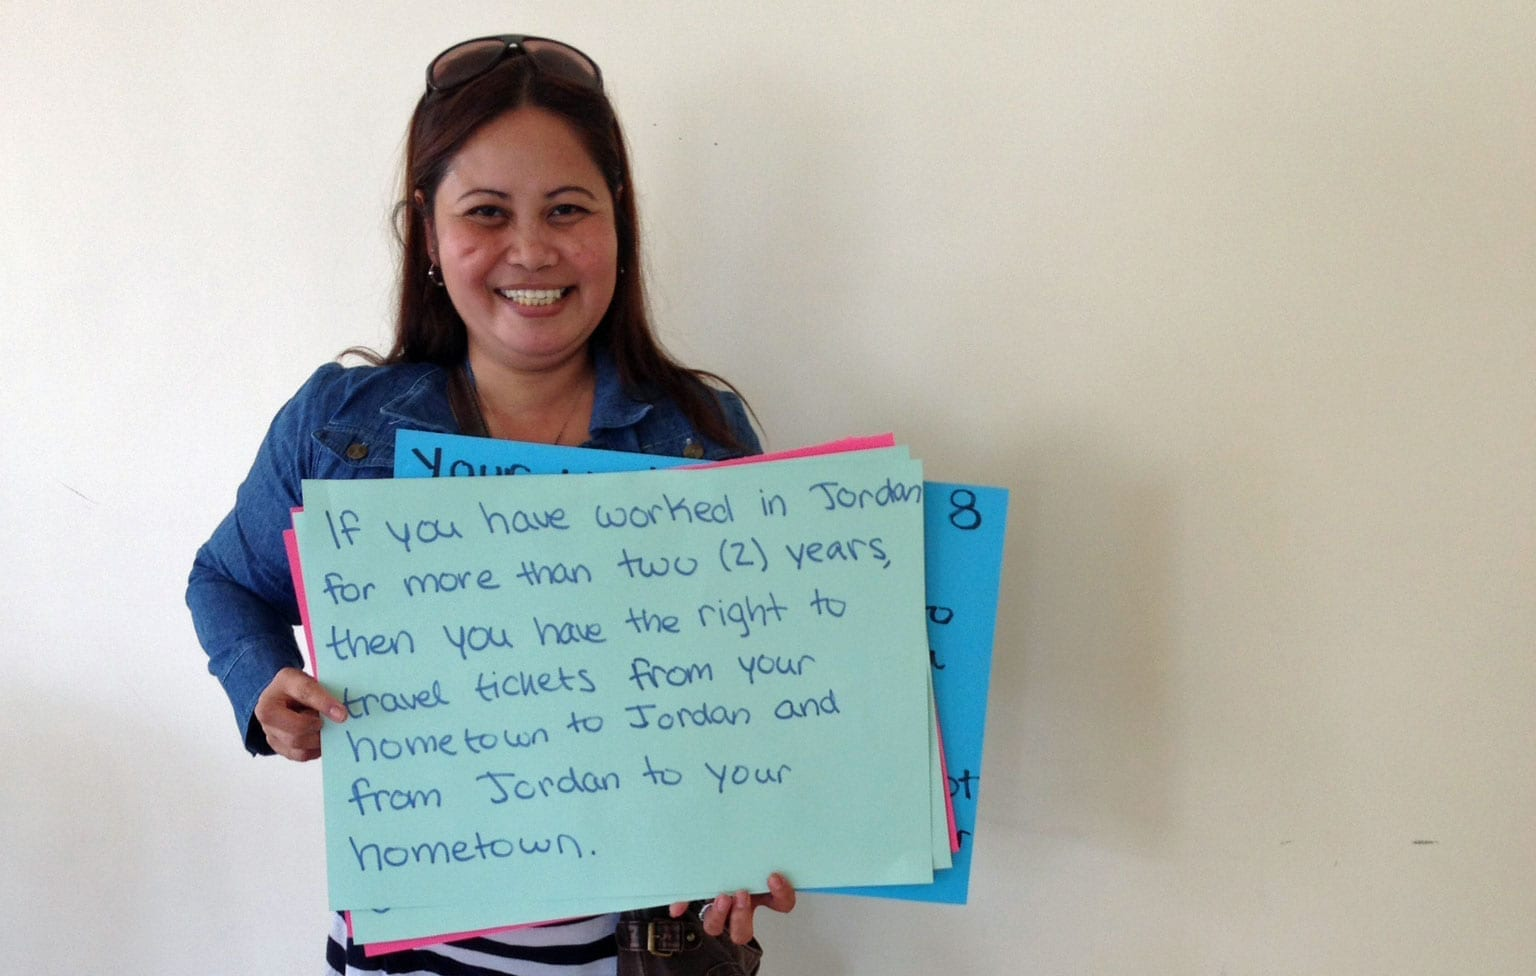 Filipina domestic worker participant, holding sign, if you have worked in Jordan for more than two years, then you have the right to travel tickets from your hometown to Jordan and from Jordan to your hometown